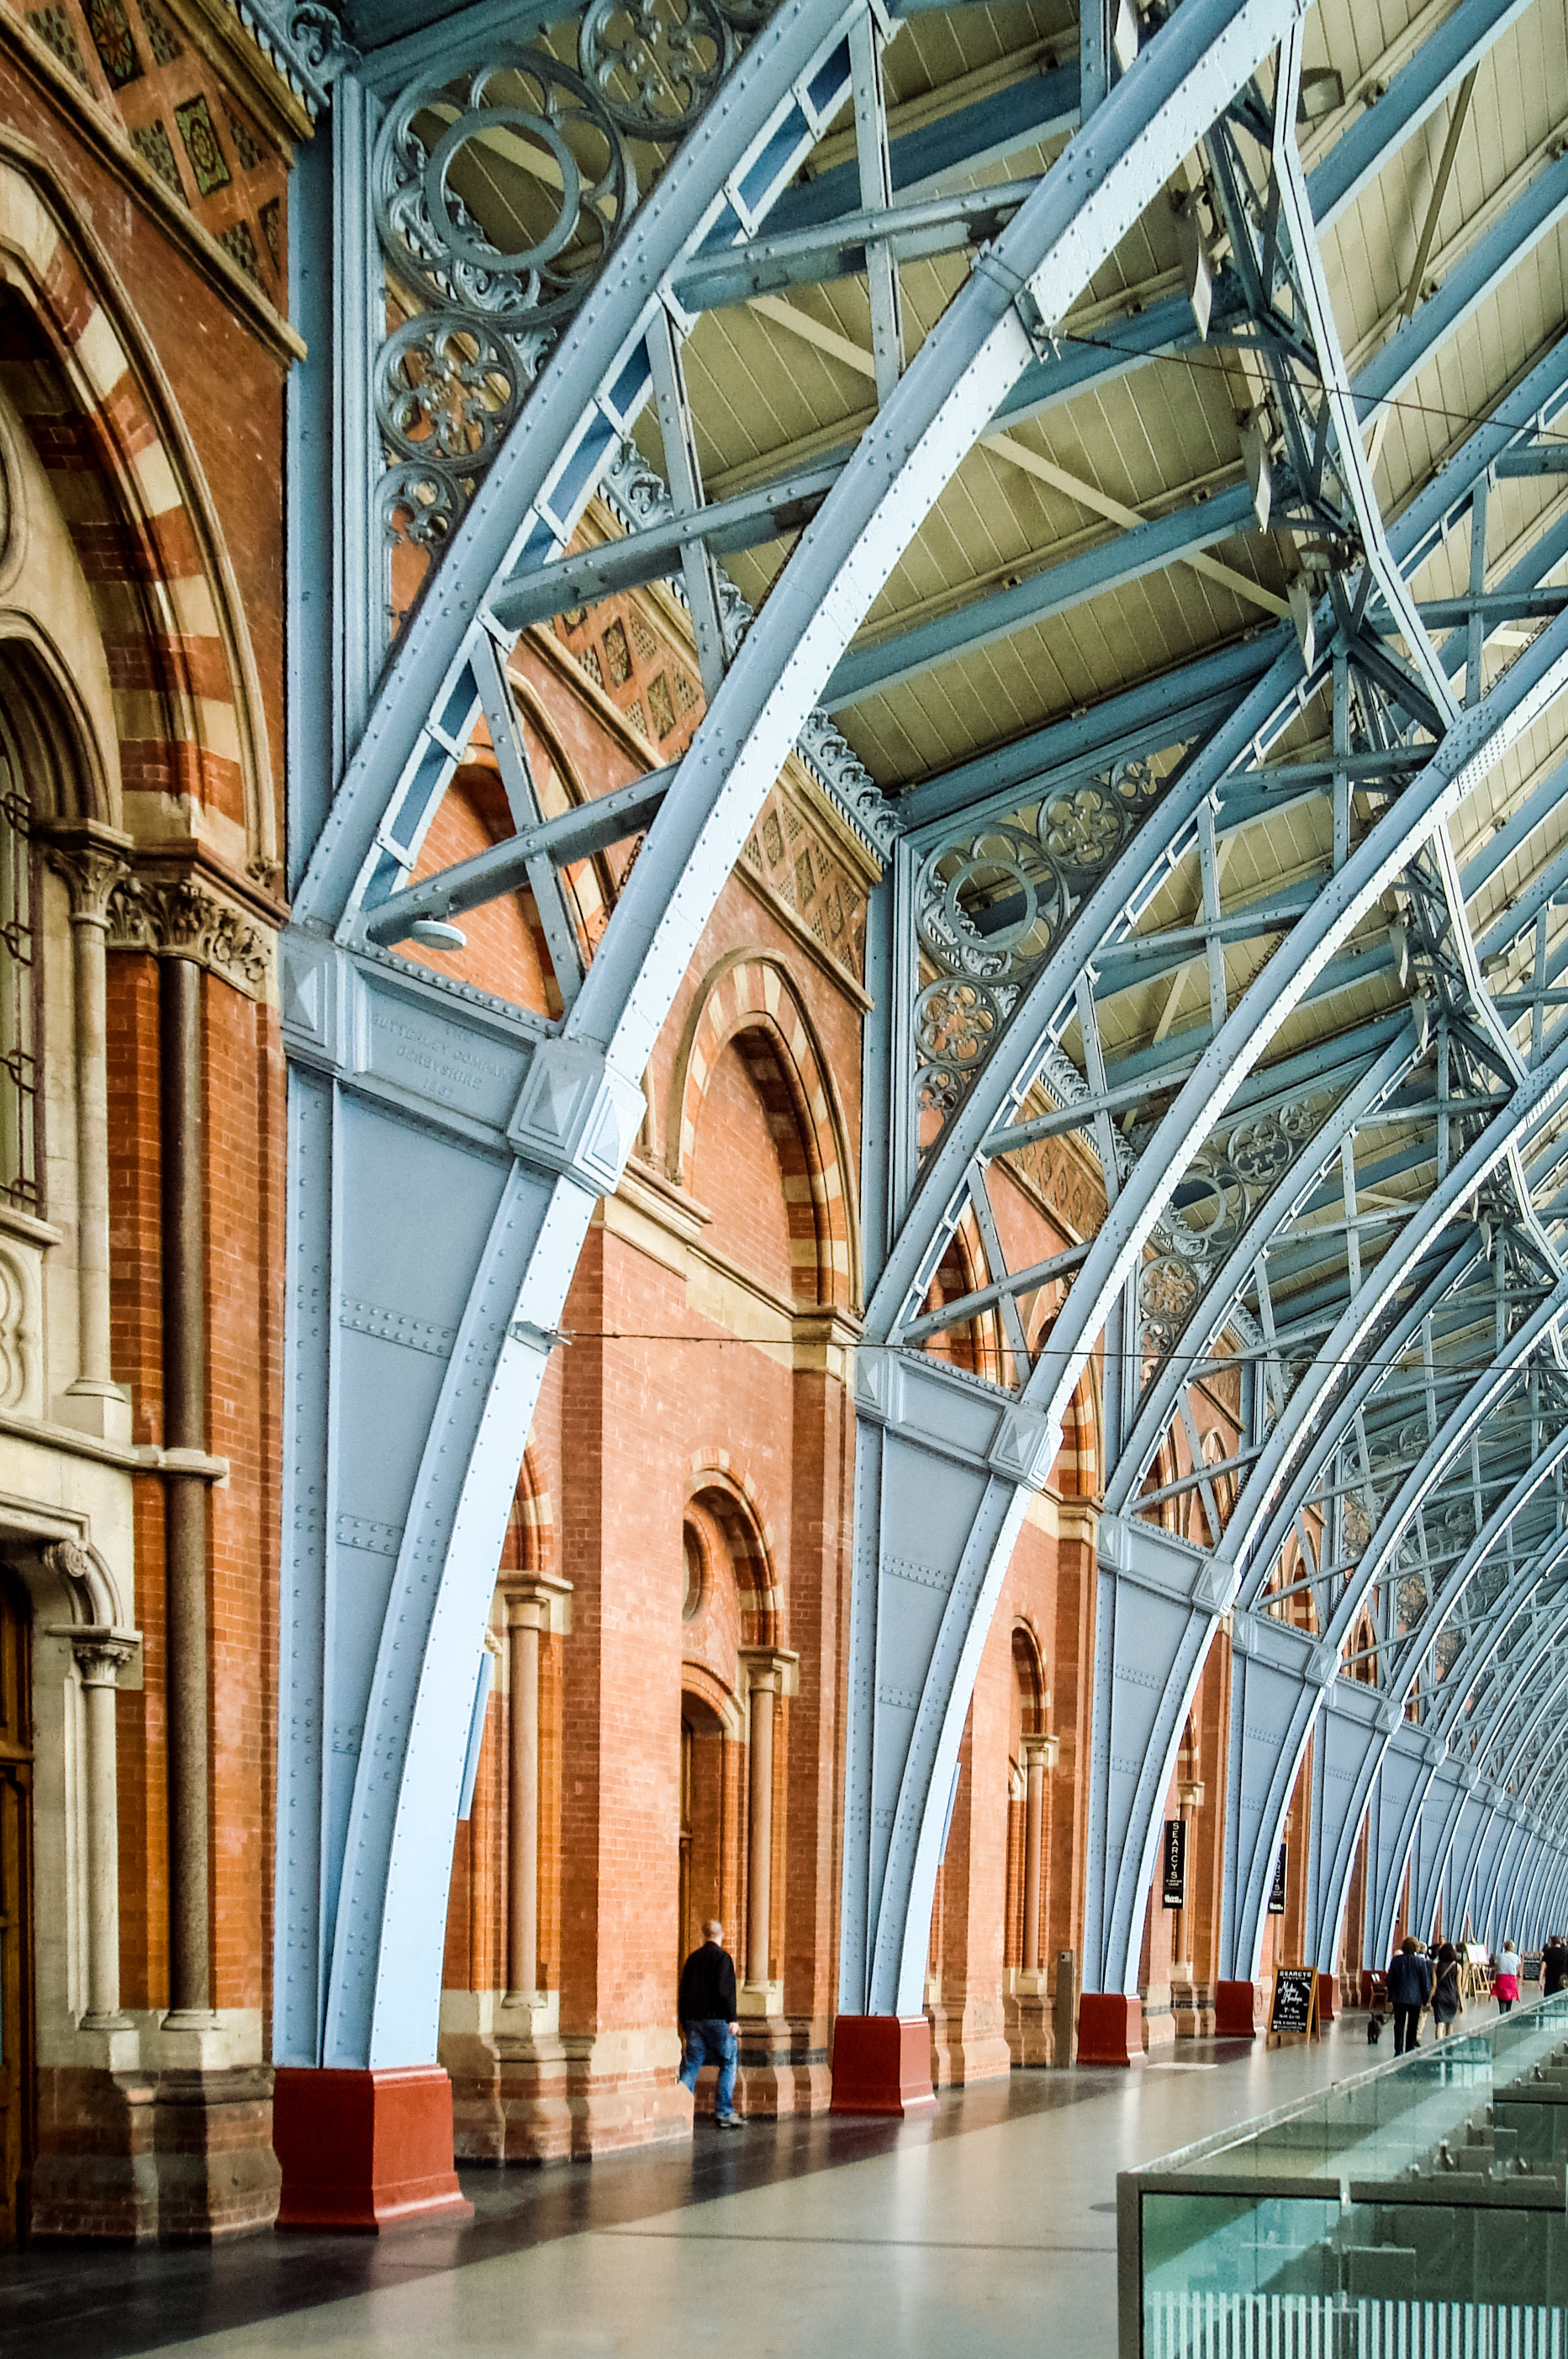 St. Pancras Station, London